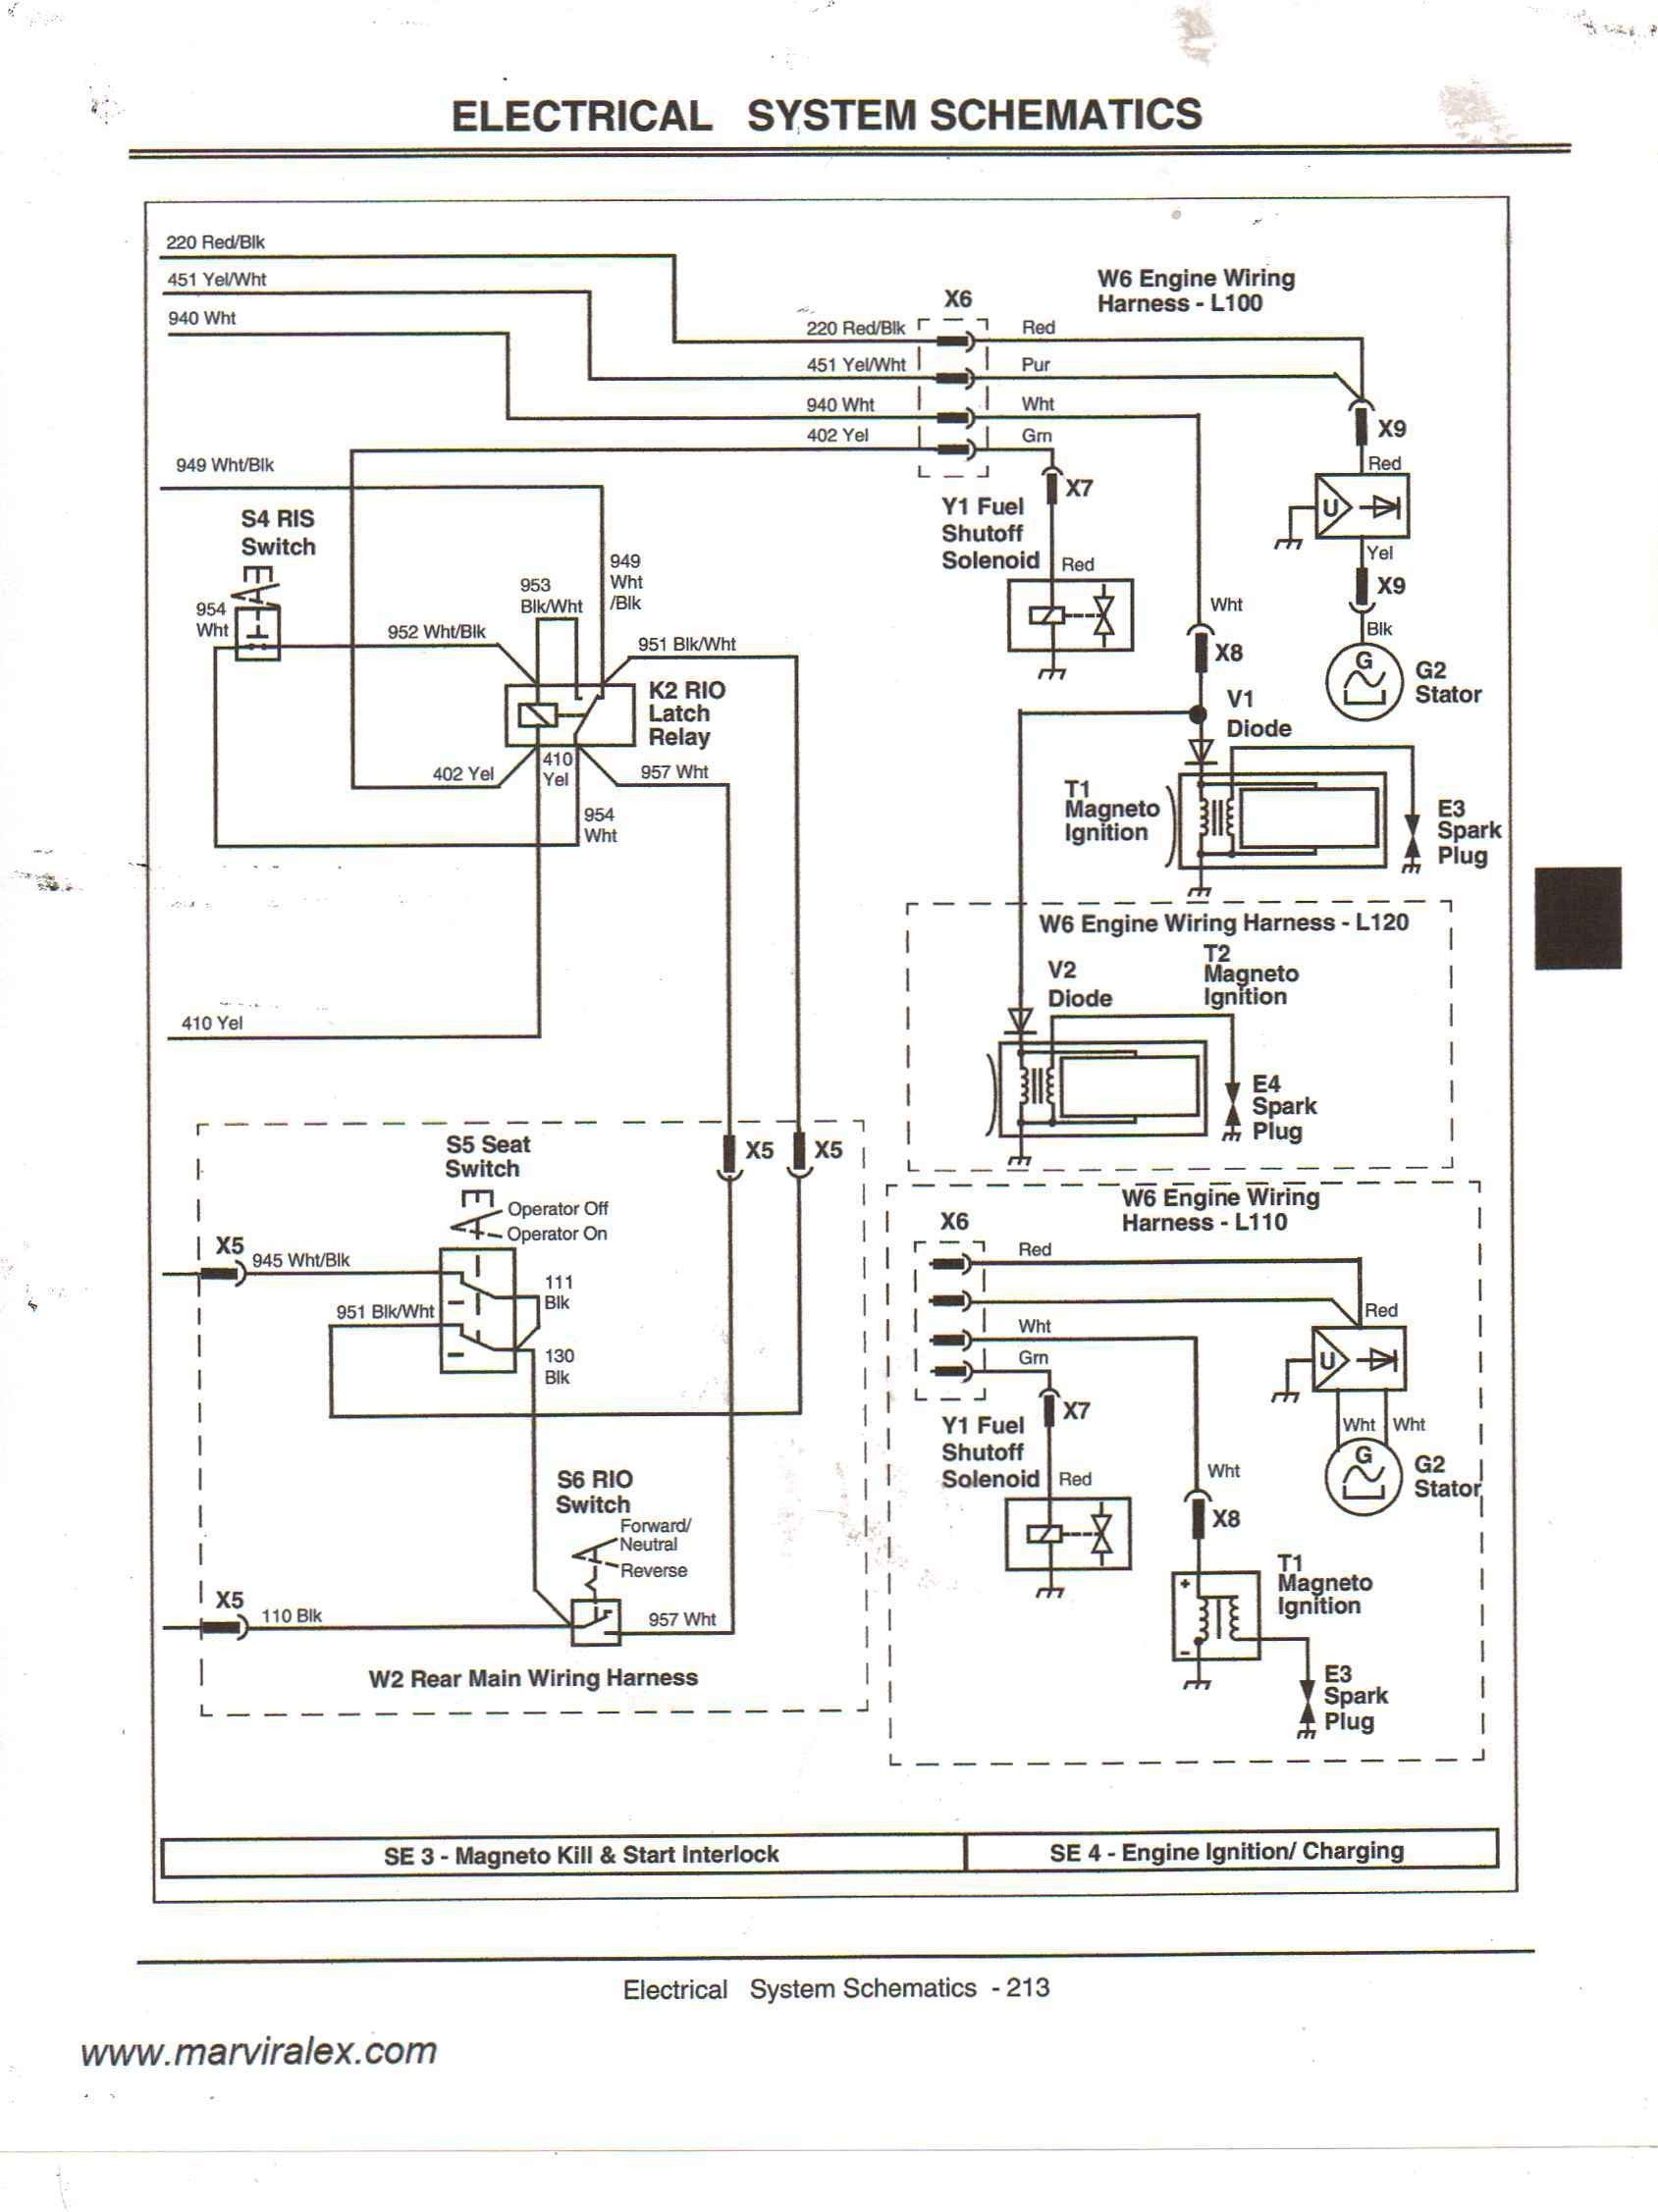 Unique Wiring Diagram Design Sample Free Download Diagrams Digramssample Diagramimages Electrical Diagram Repair Manuals Diagram